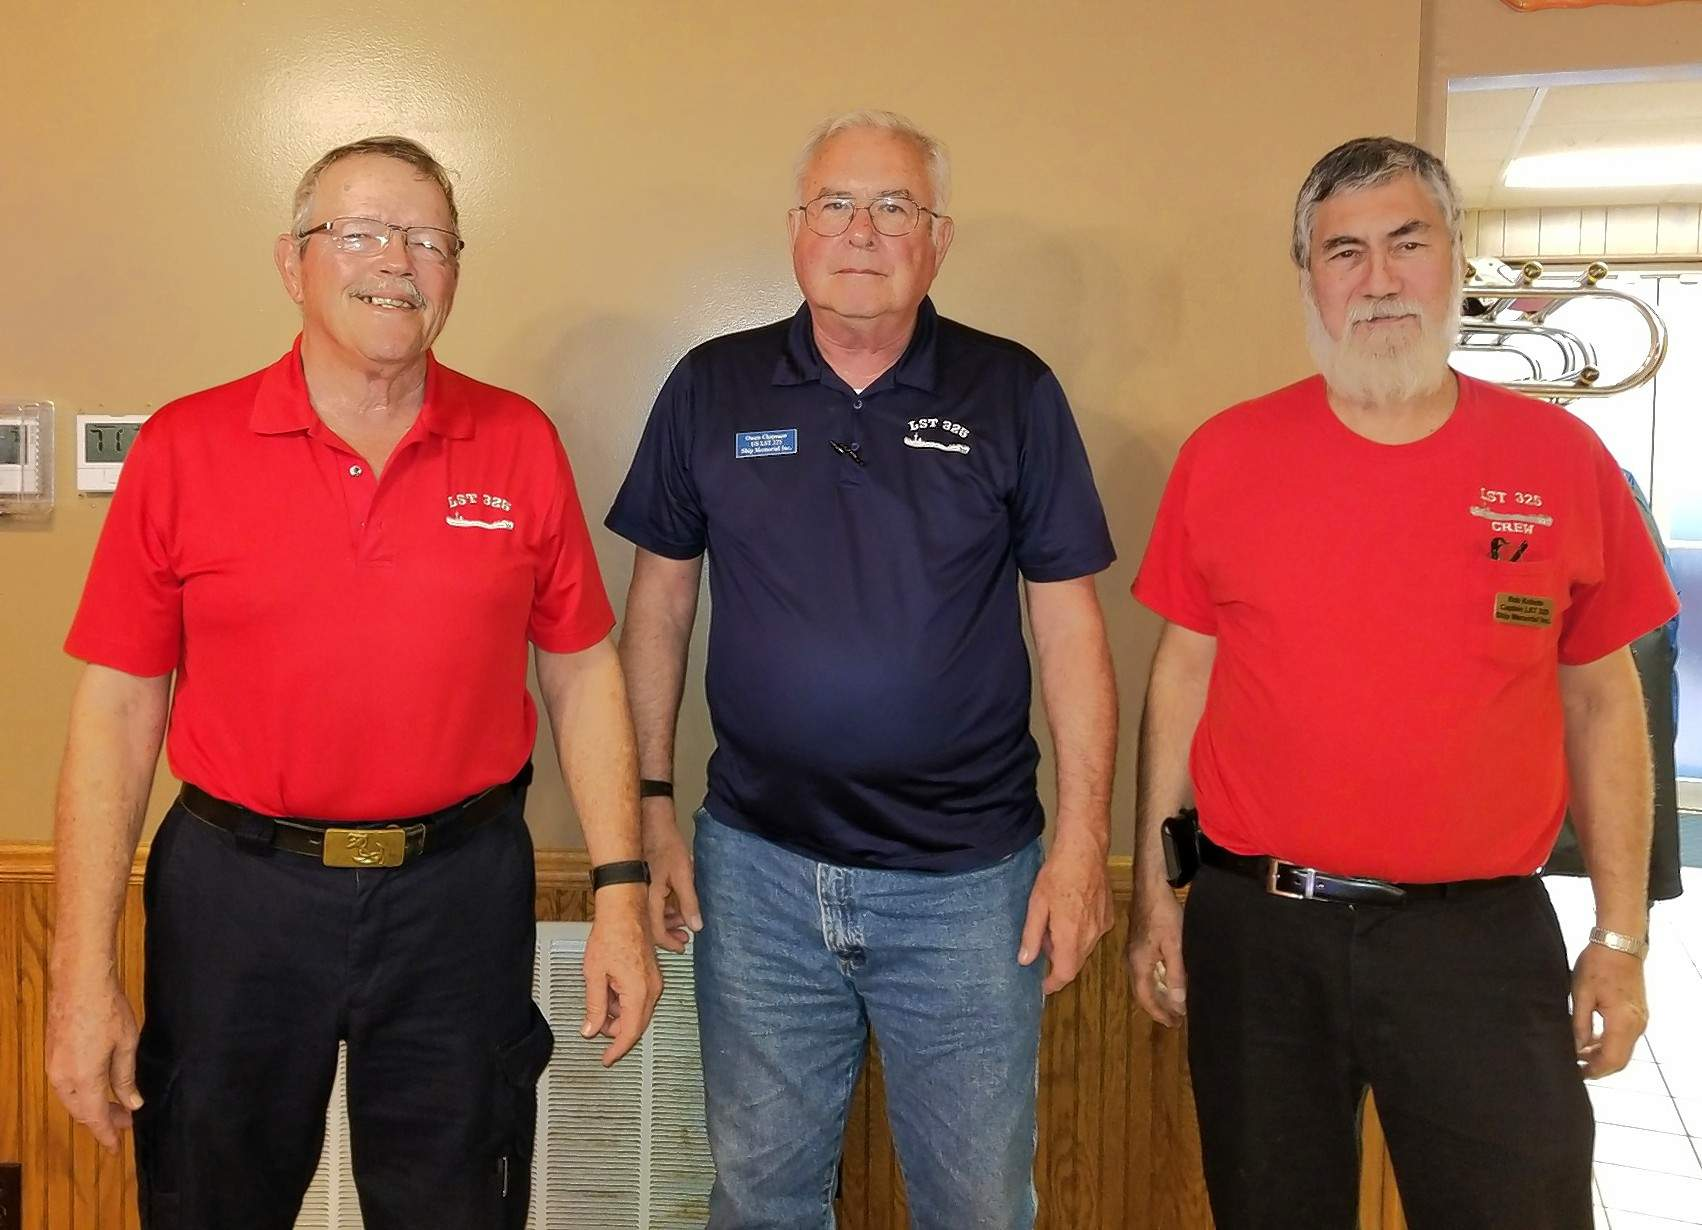 Representatives of the USS LST 325 Ship Memorial, Inc. were guest speakers at the April 24 luncheon meeting of the Chester Chamber of Commerce. From left, Owen Chapman, catering officer and vice treasurer; John Tallent, president, and Captain Bob Kubota, commanding officer.